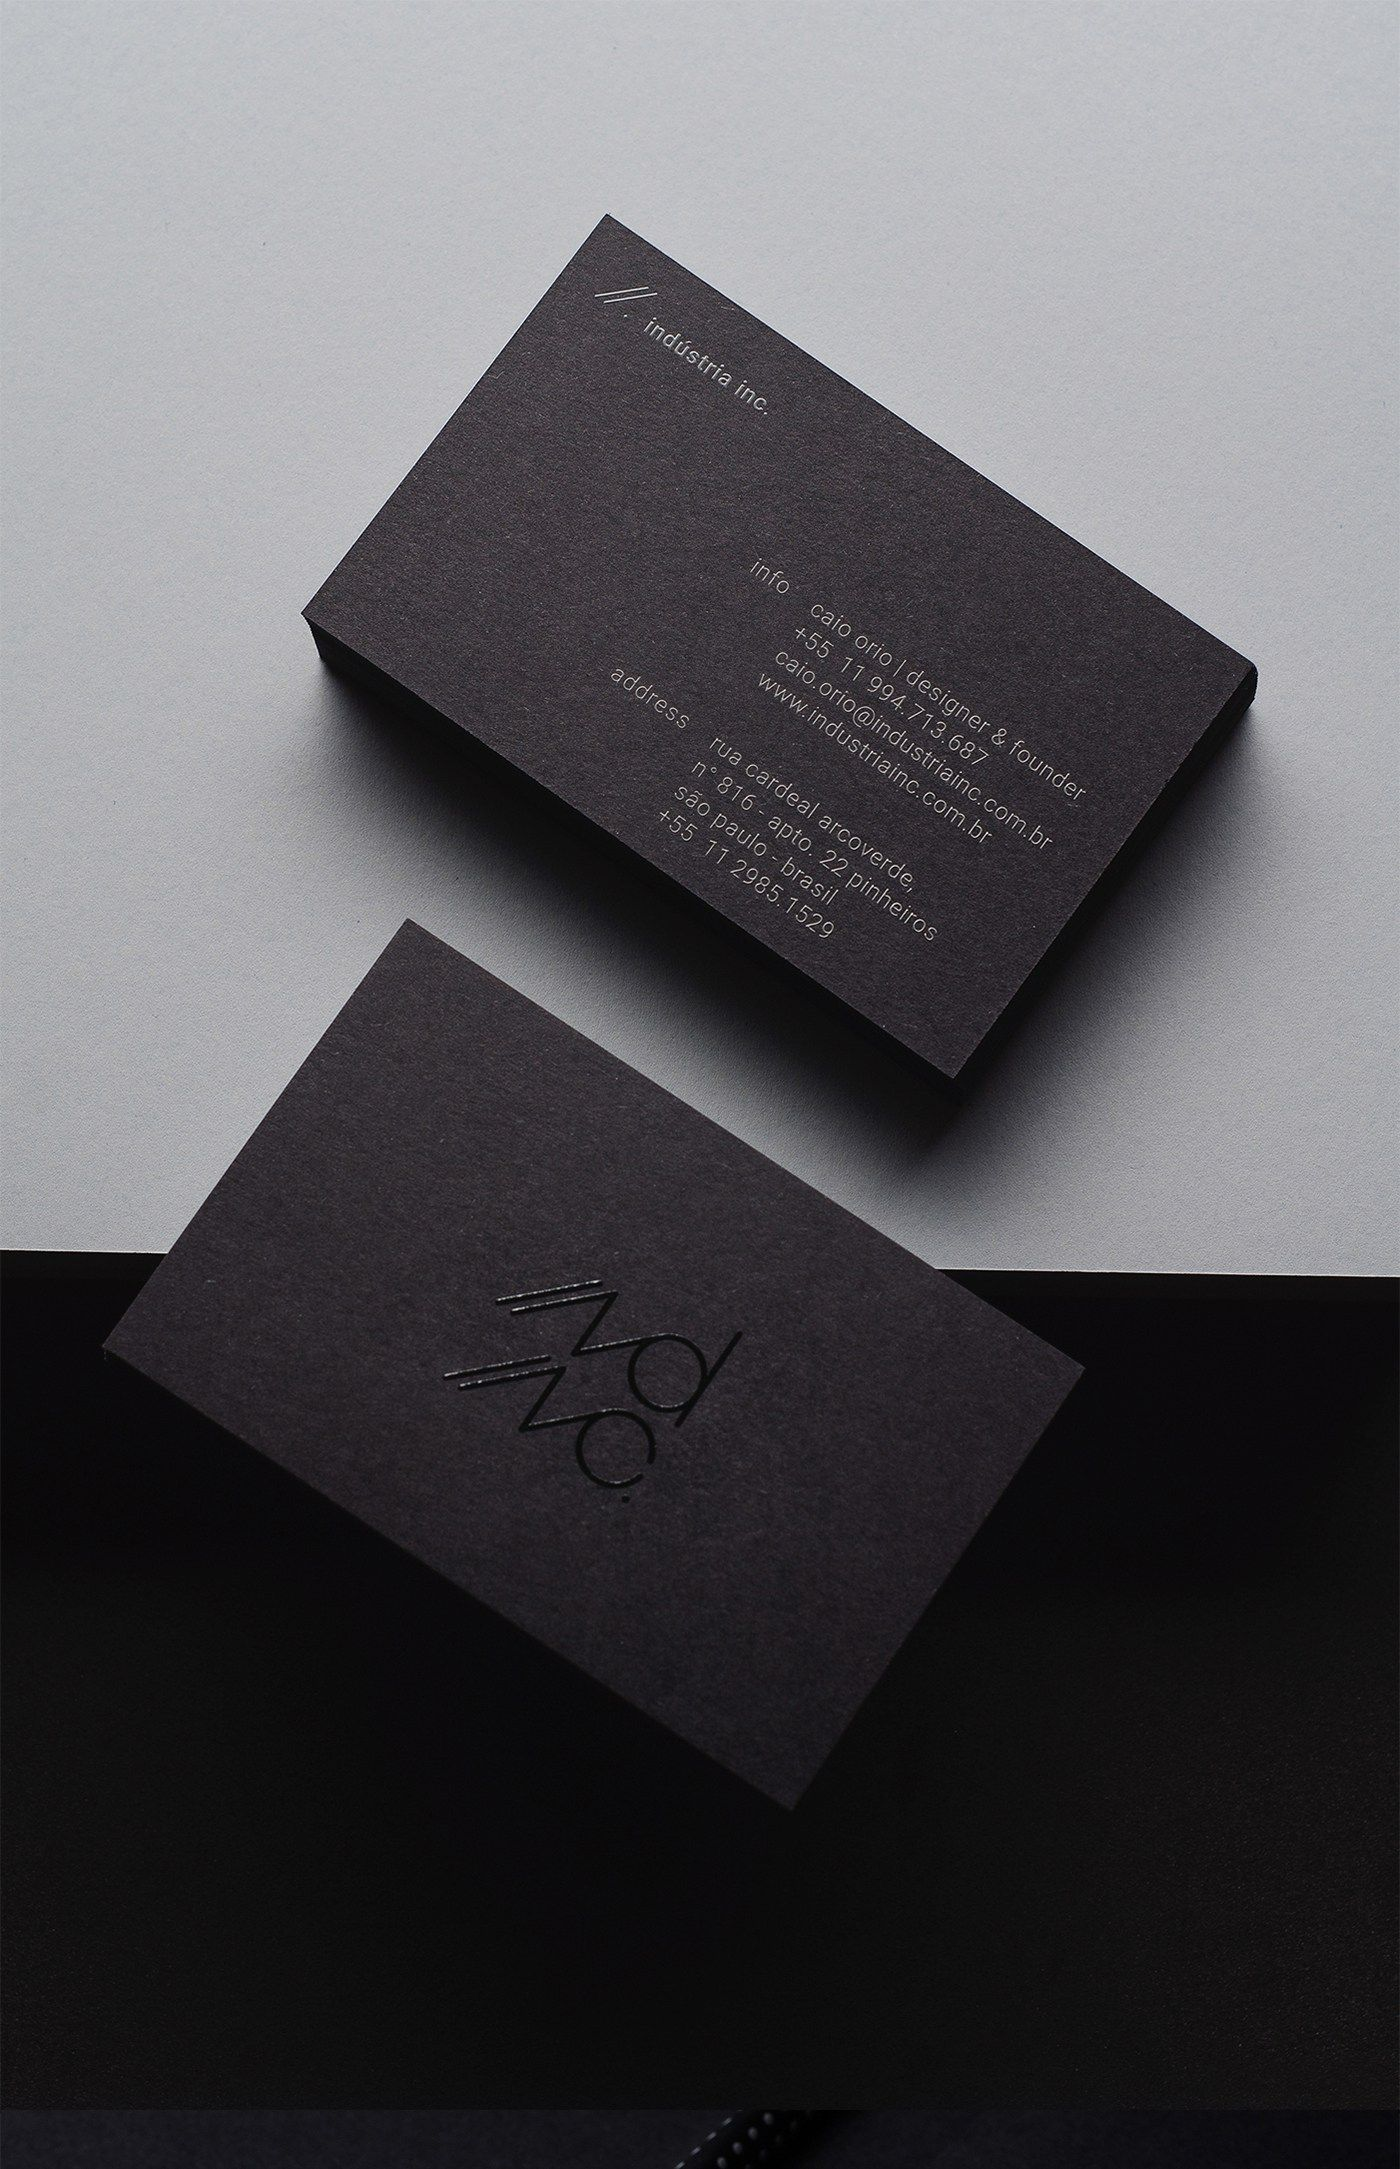 14 Of The Best Clean Classy Business Card Designs Branding Identity Business Card Design Minimal Classy Business Cards Business Card Design Black